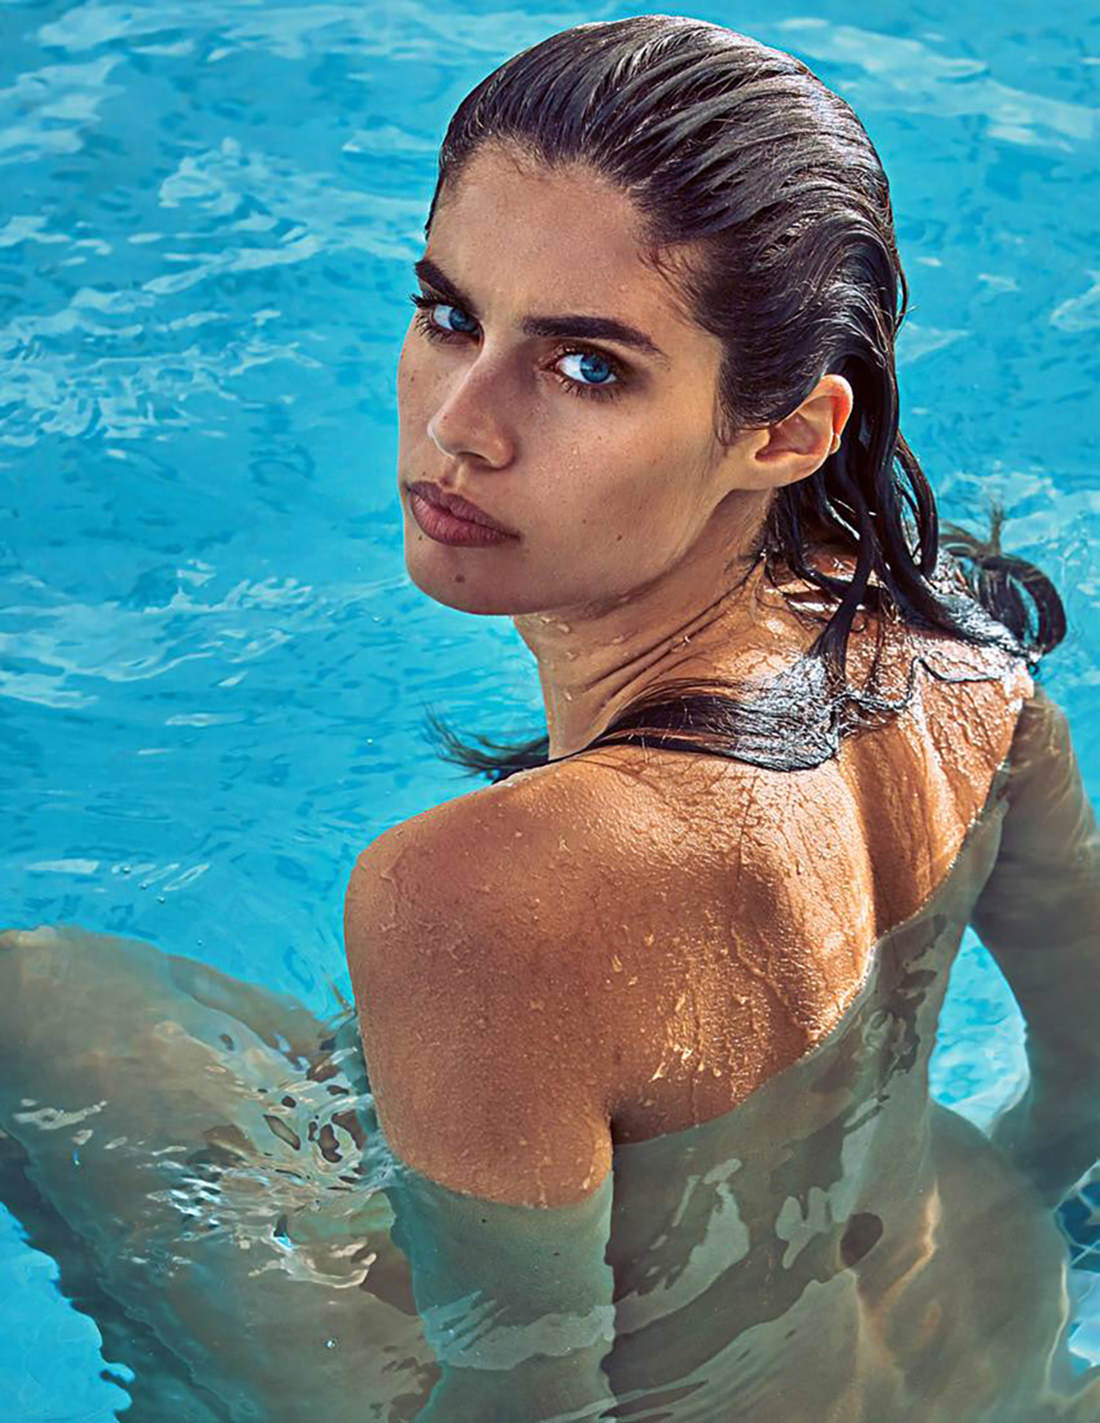 Sara Sampaio - Madame Figaro (April 2018)